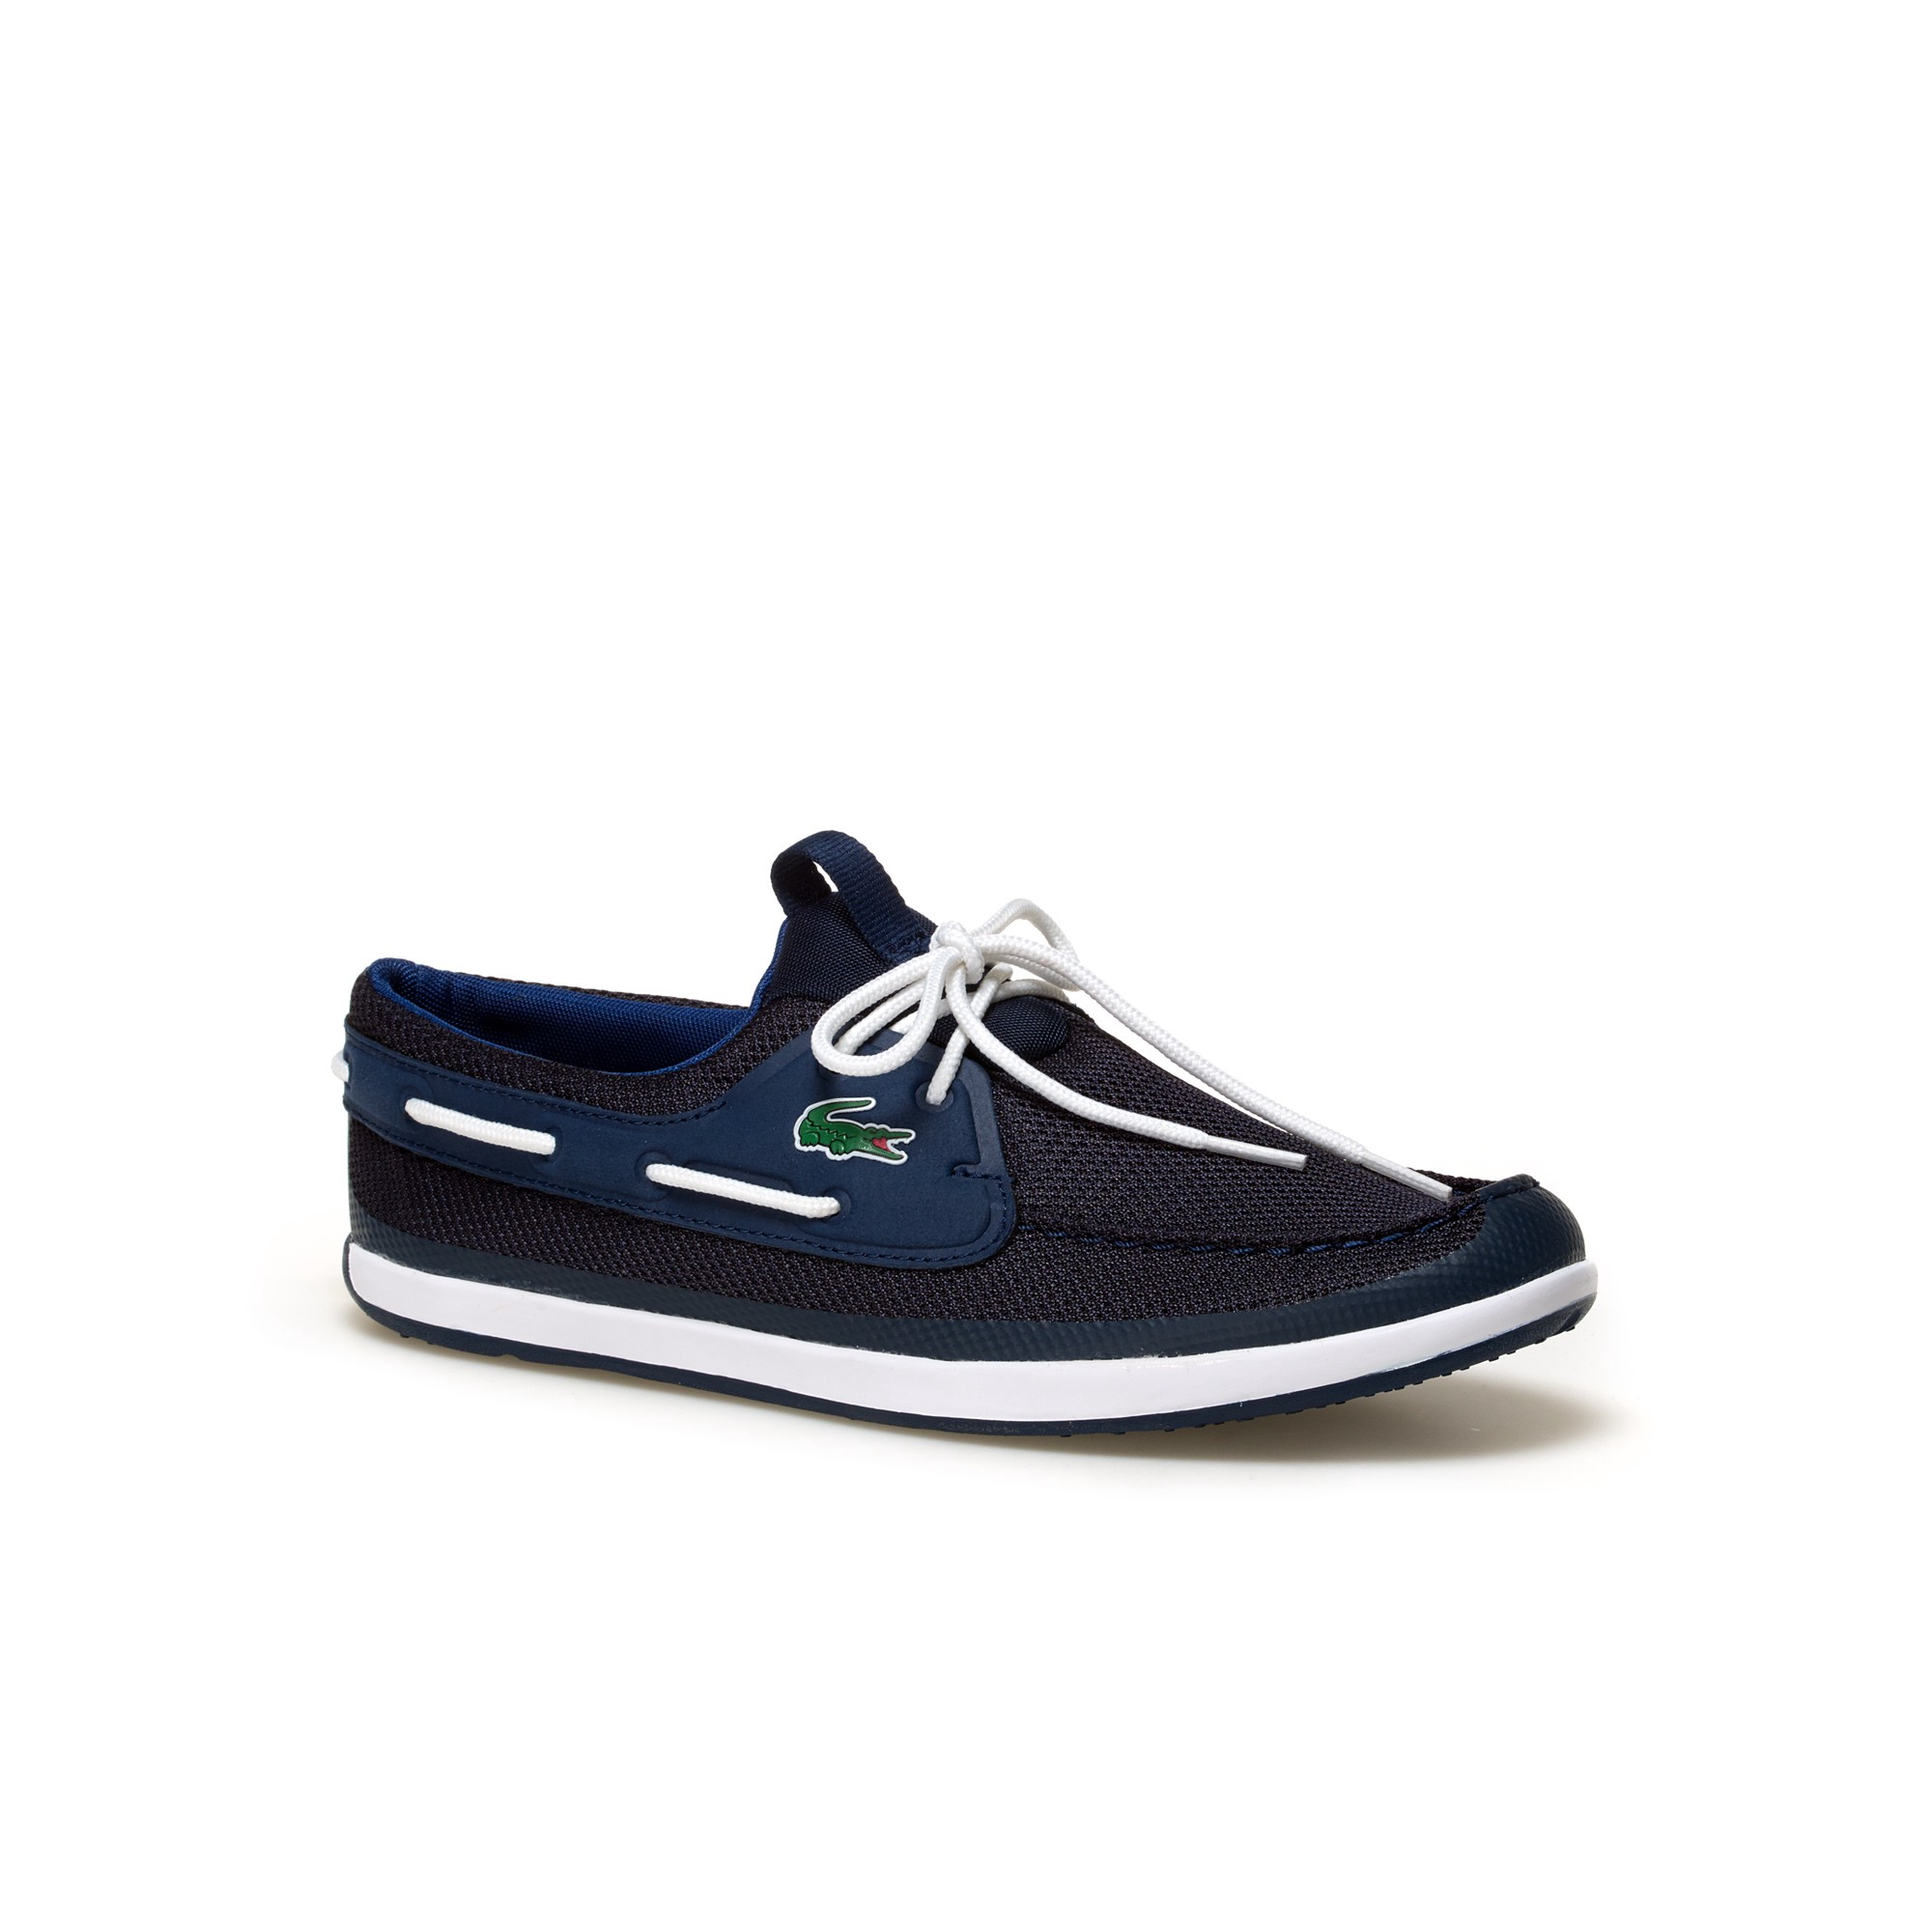 b32470a22a LACOSTE Men s Landsailing Textile Boat Shoes - navy dark blue.  lacoste   shoes